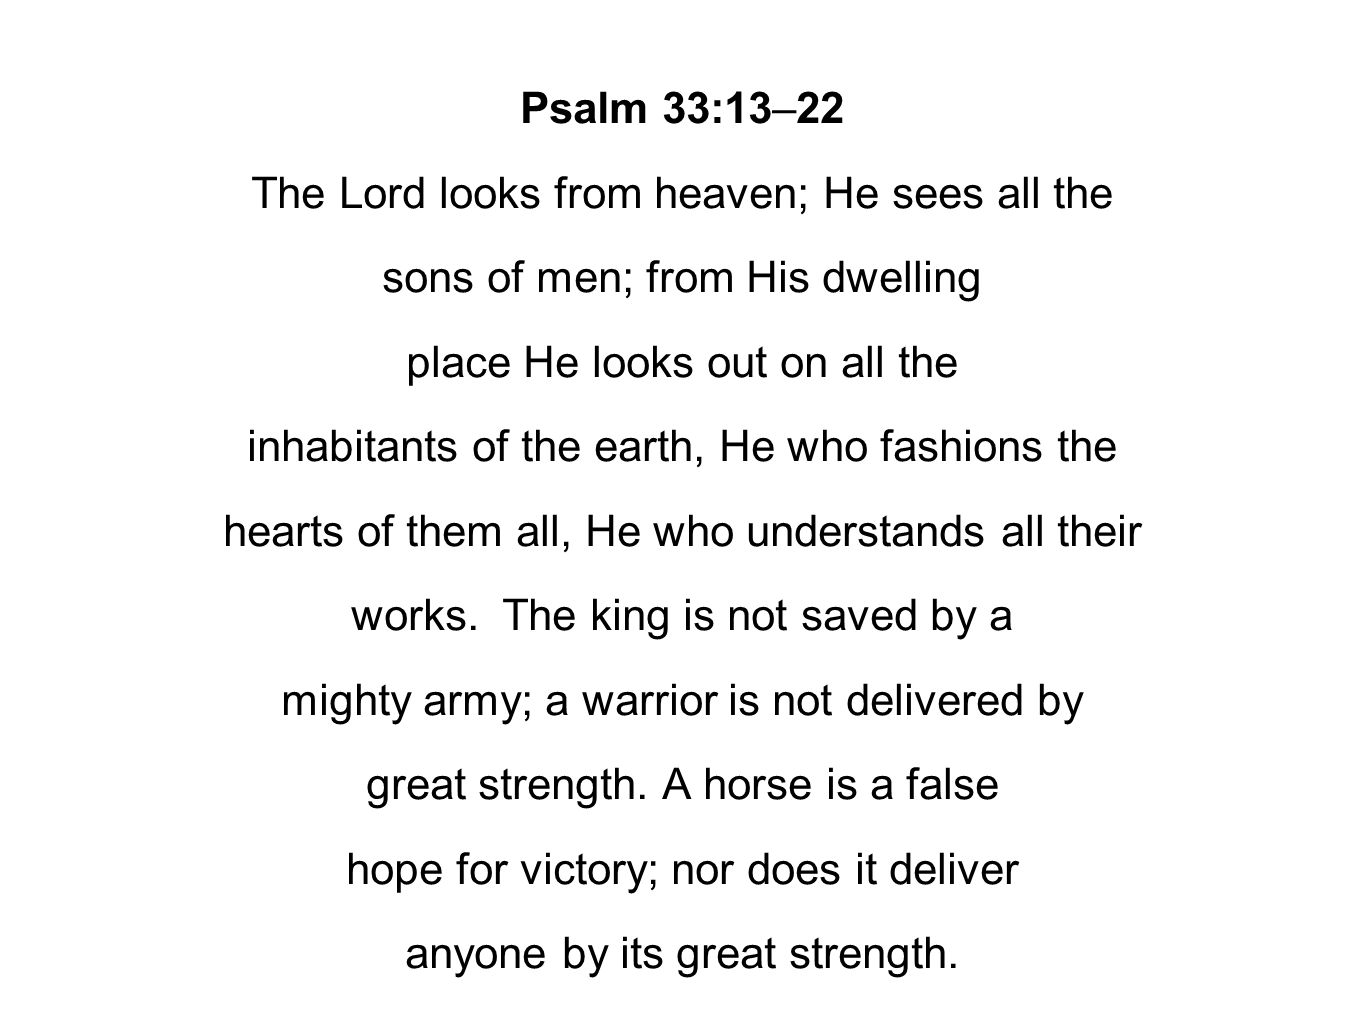 Psalm 33:13–22 The Lord looks from heaven; He sees all the sons of men; from His dwelling place He looks out on all the inhabitants of the earth, He who fashions the hearts of them all, He who understands all their works.